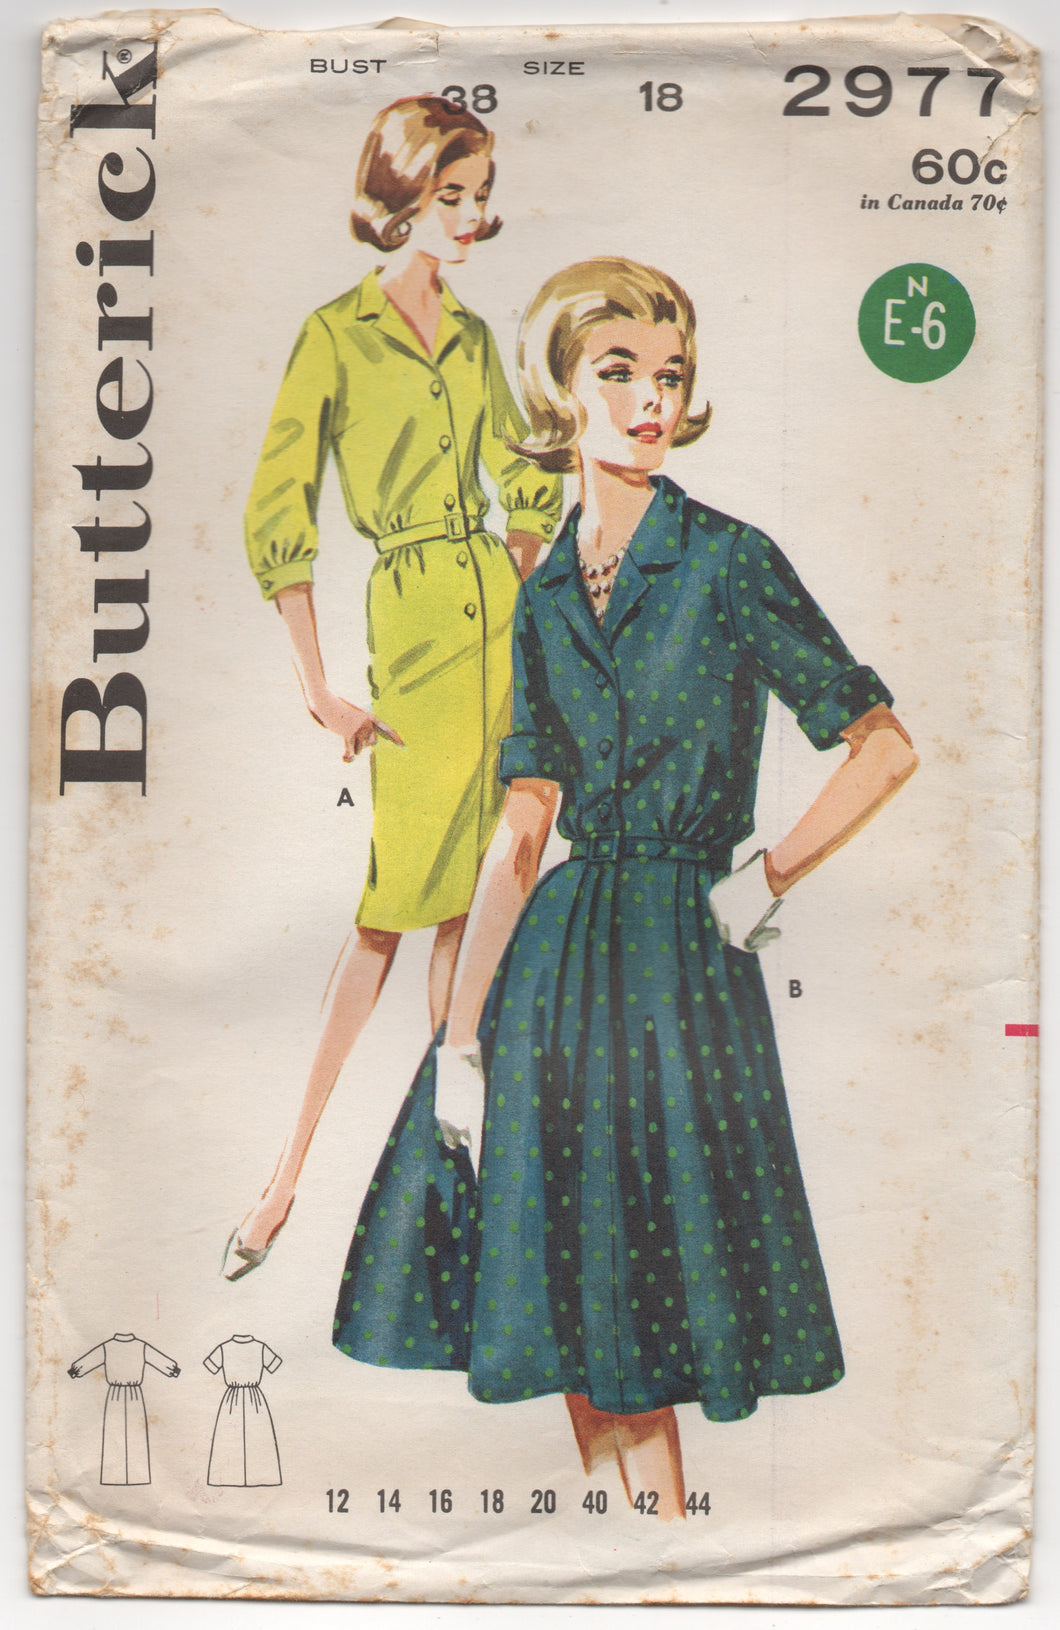 1960's Butterick One Piece shirtwaist Dress with Straight or Flared skirt - Bust 38